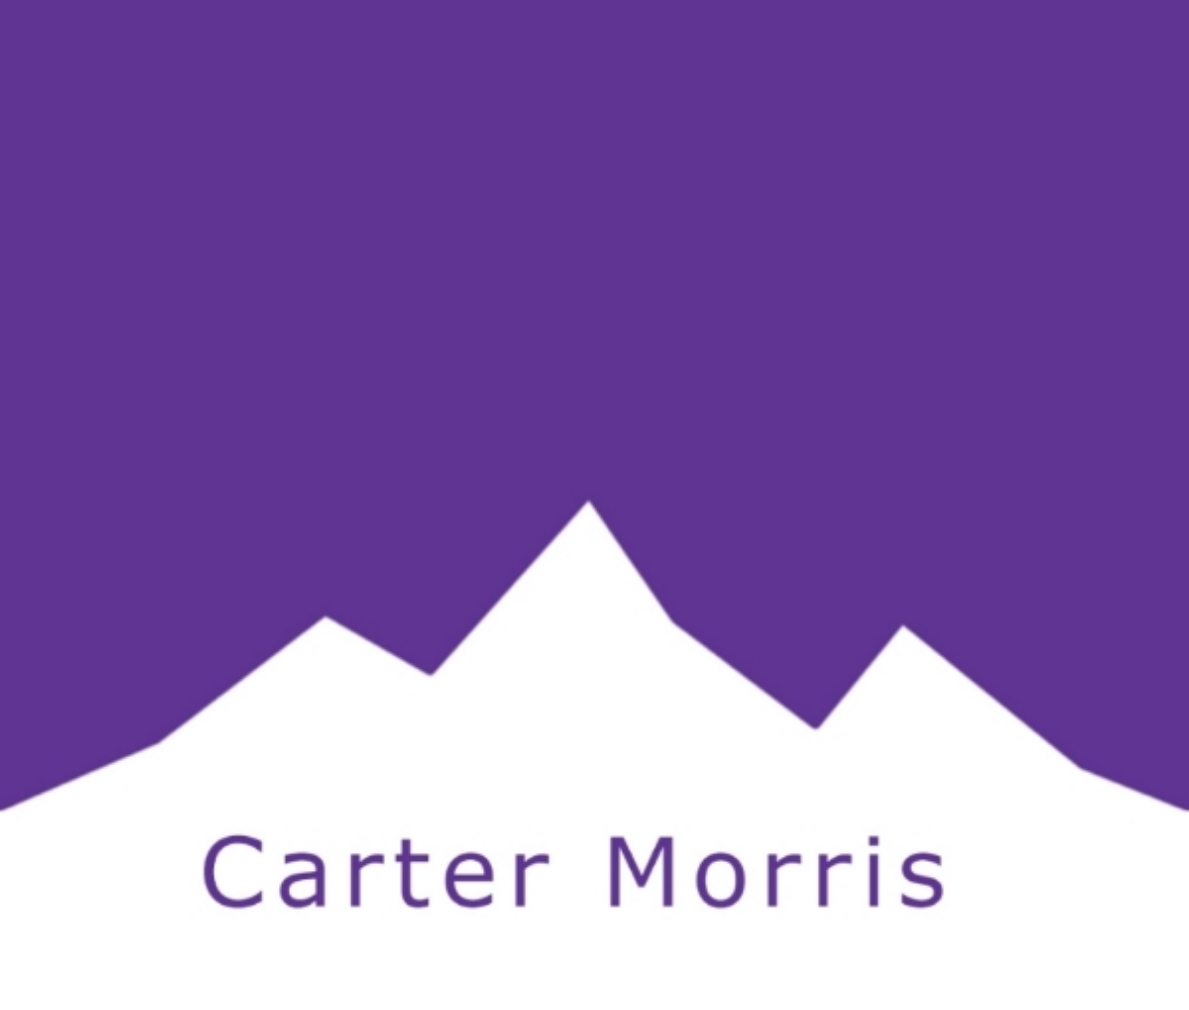 Carter Morris Talent Solutions